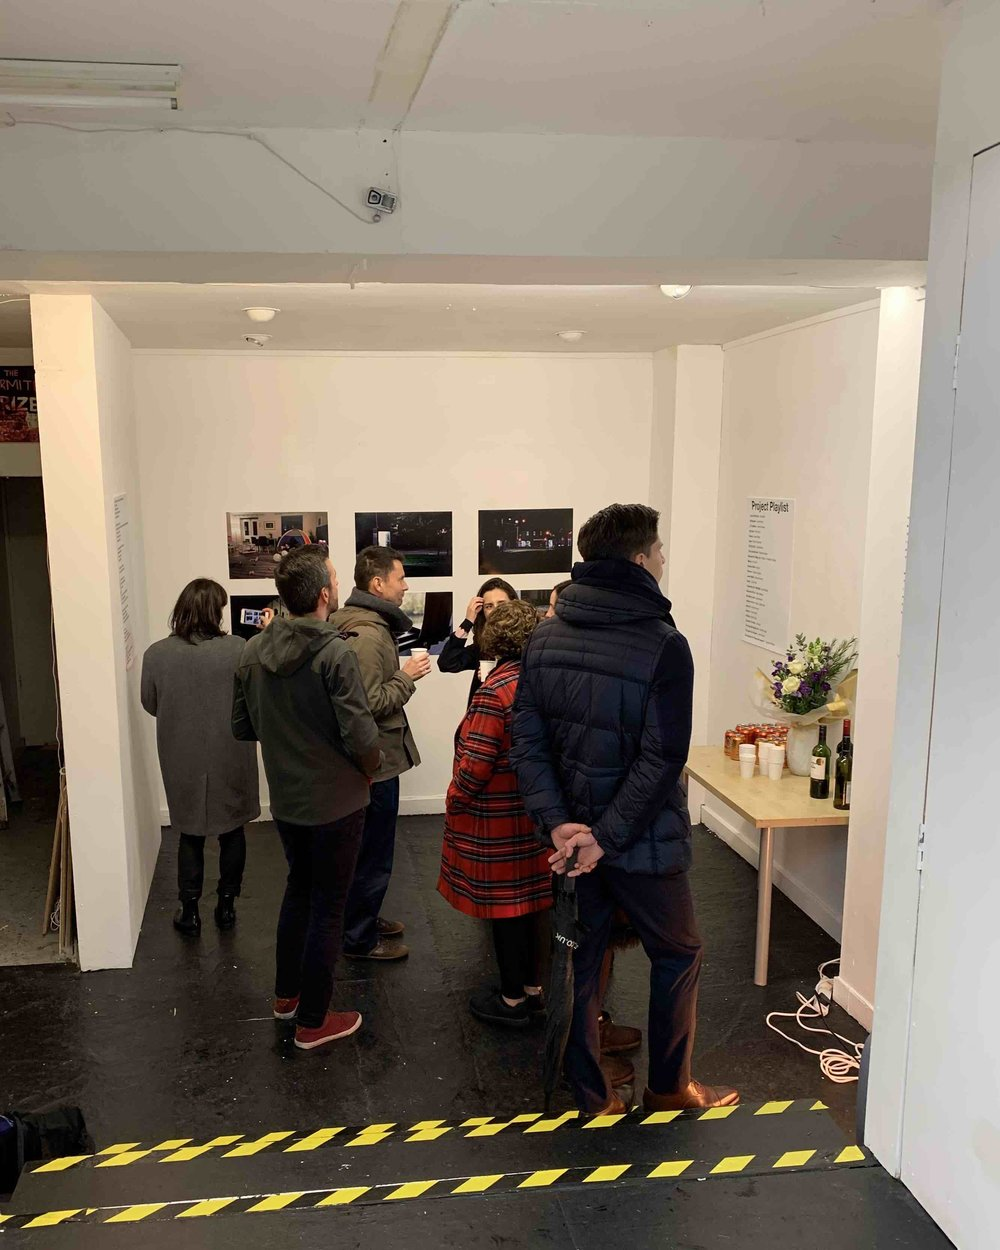 Visitors to the ROITD Private View